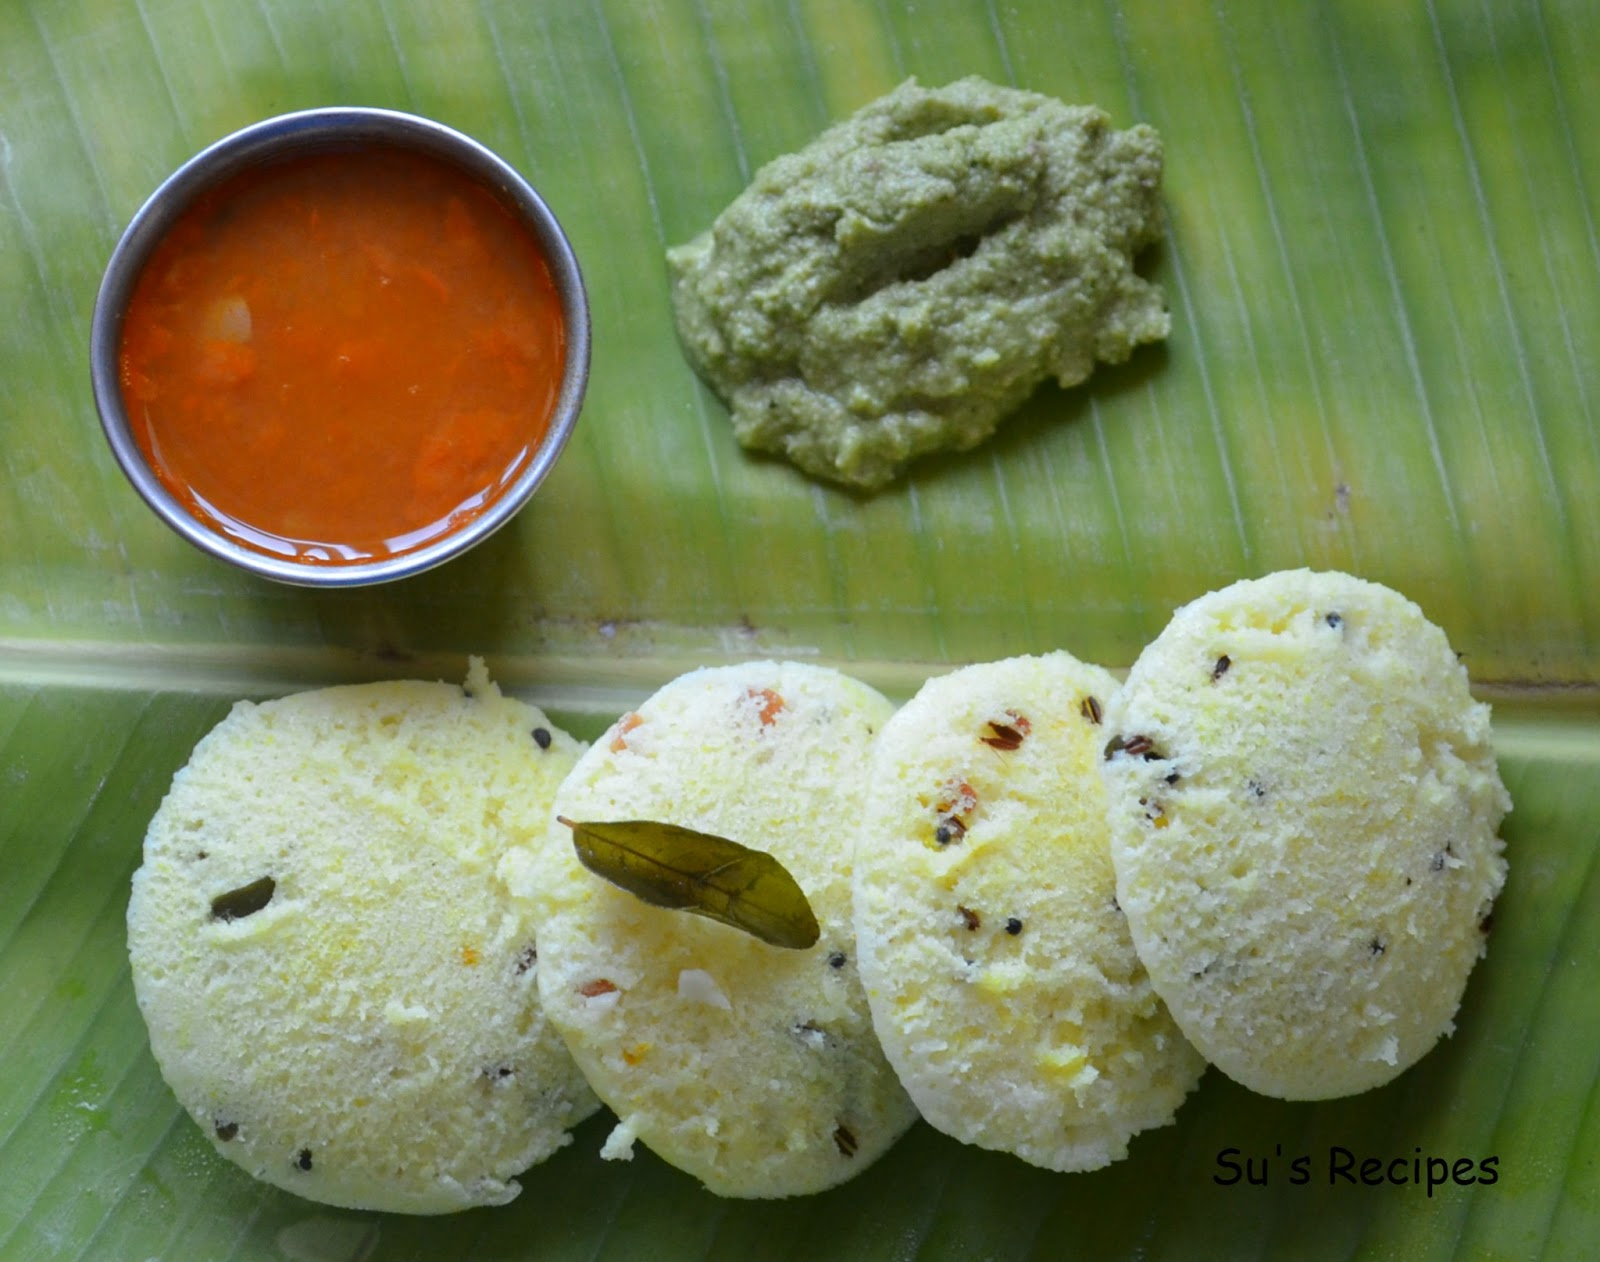 Daily idly recipe for spicy idly south indian recipes food spicy idly forumfinder Images